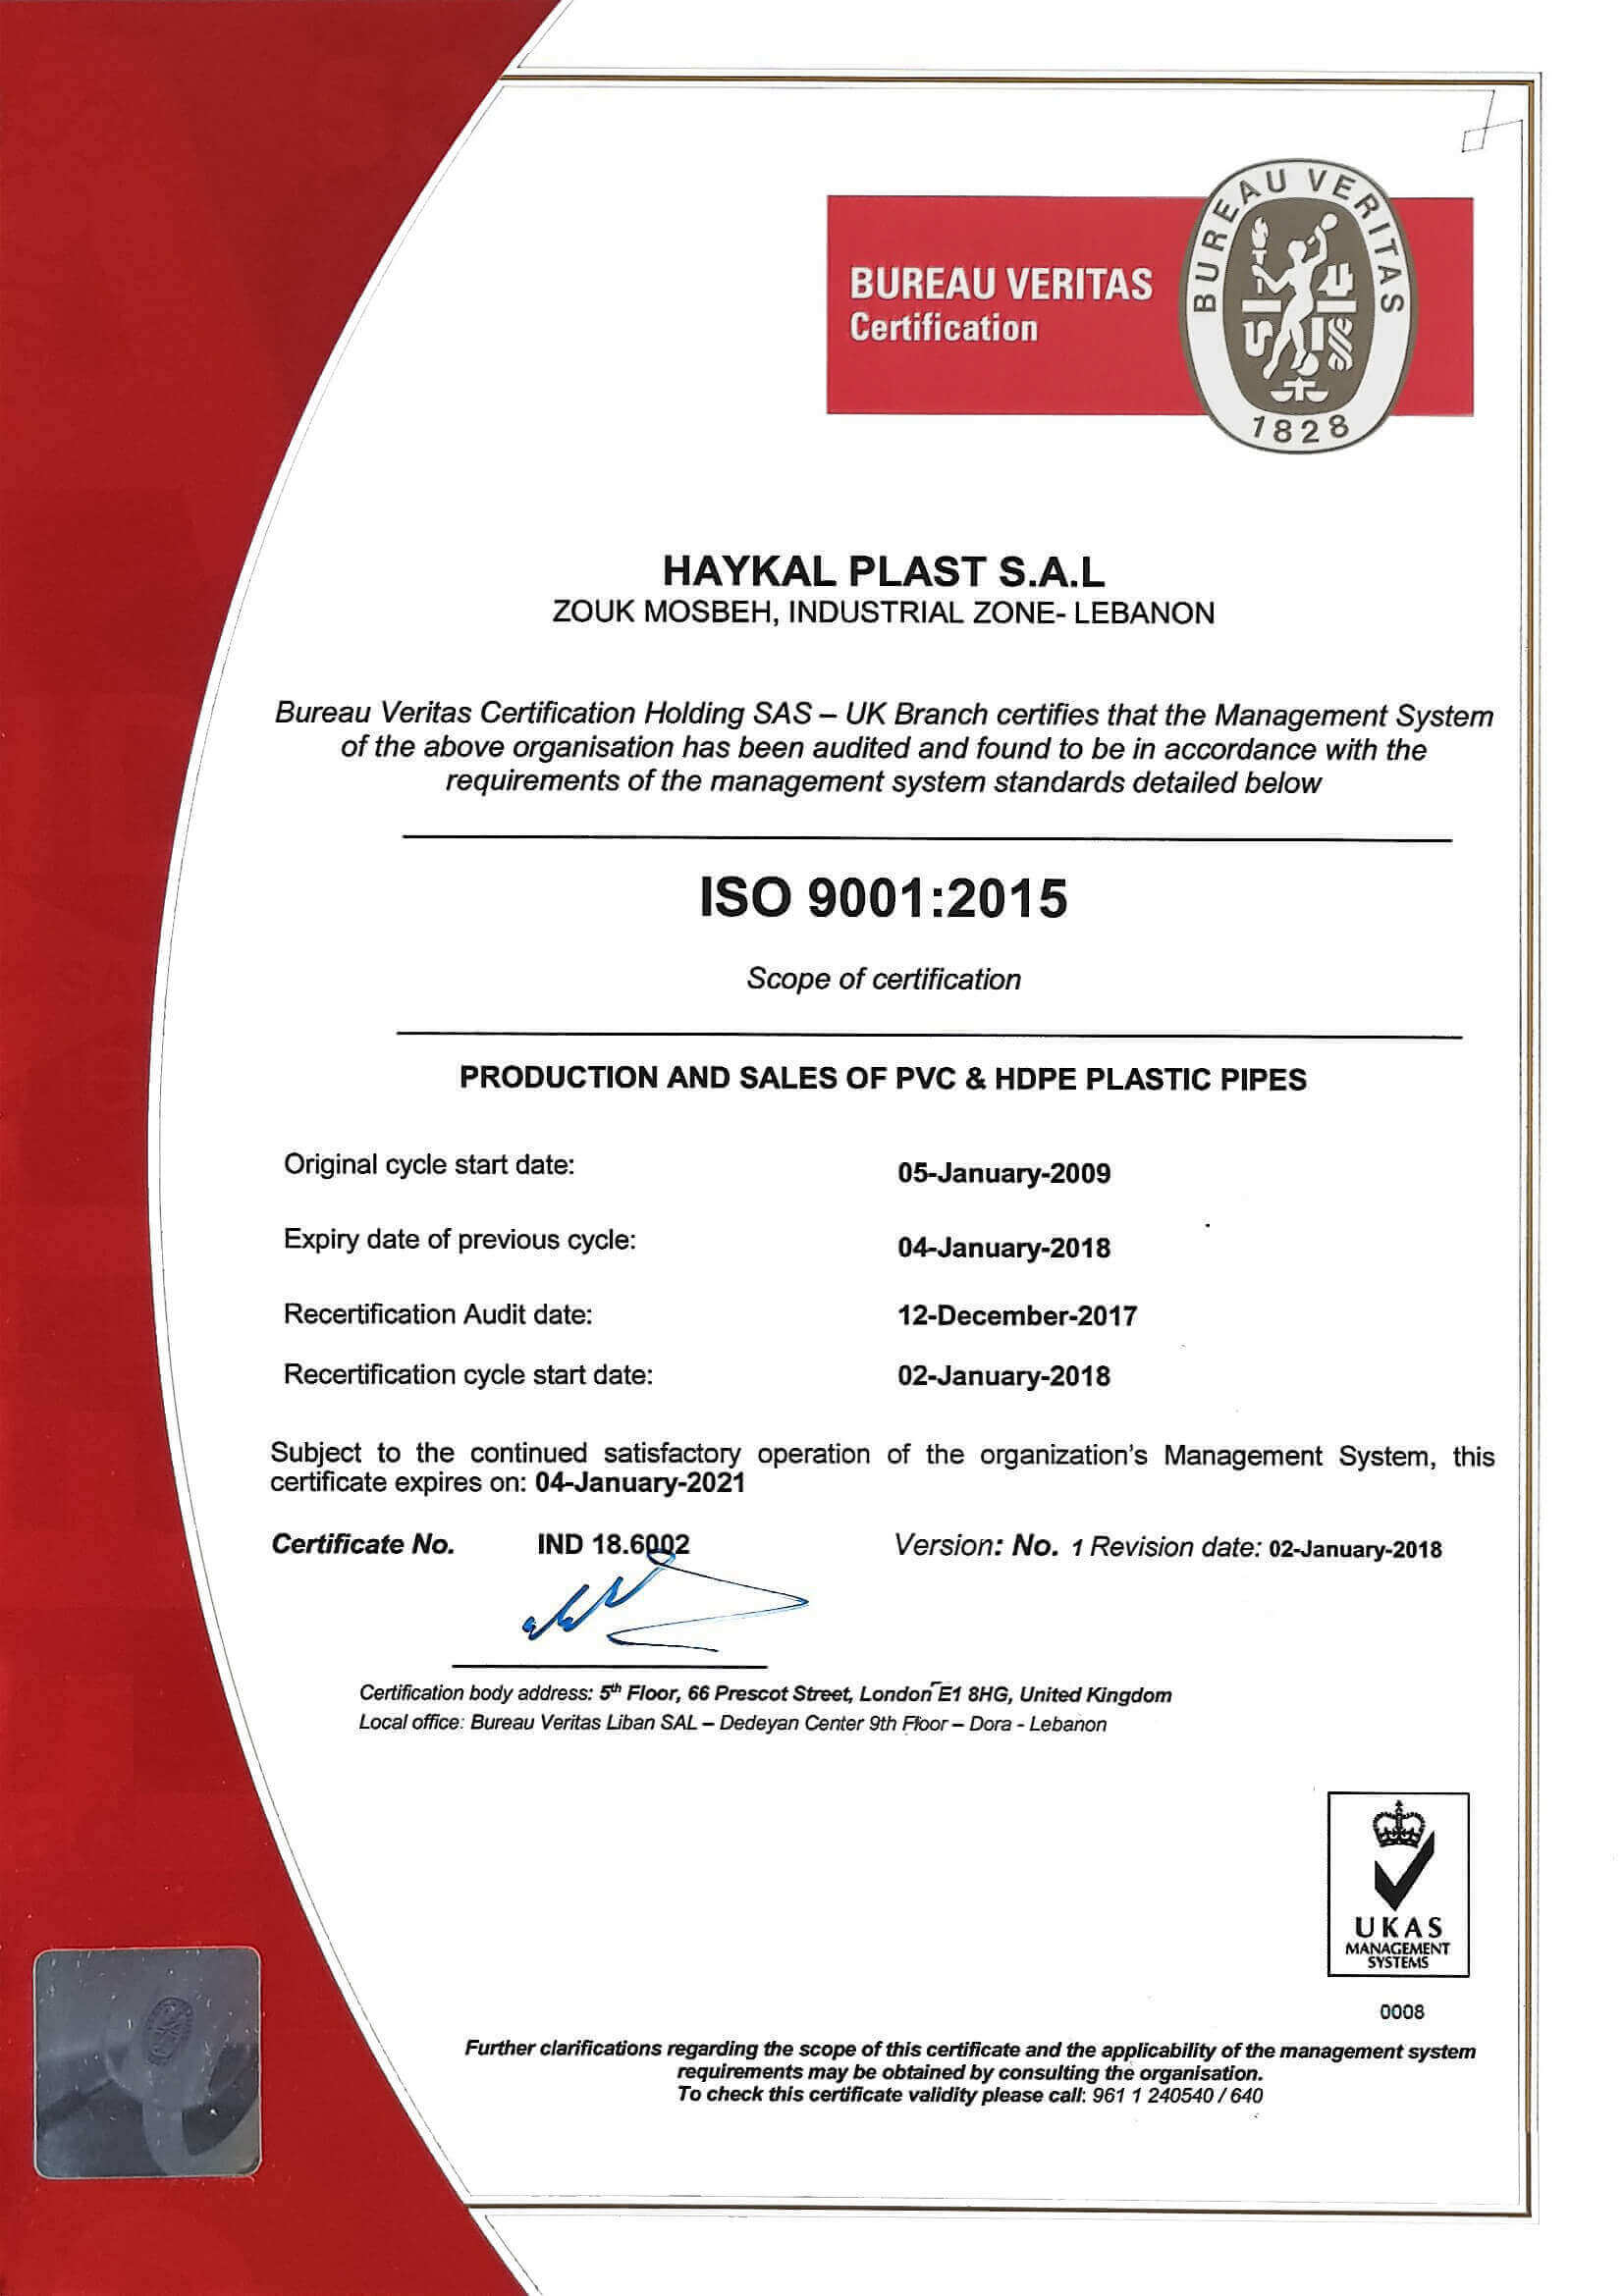 Haykal Plast ISO 9001:2015 Certificate - Production and Sales of PVC and HDPE Plastic Pipes